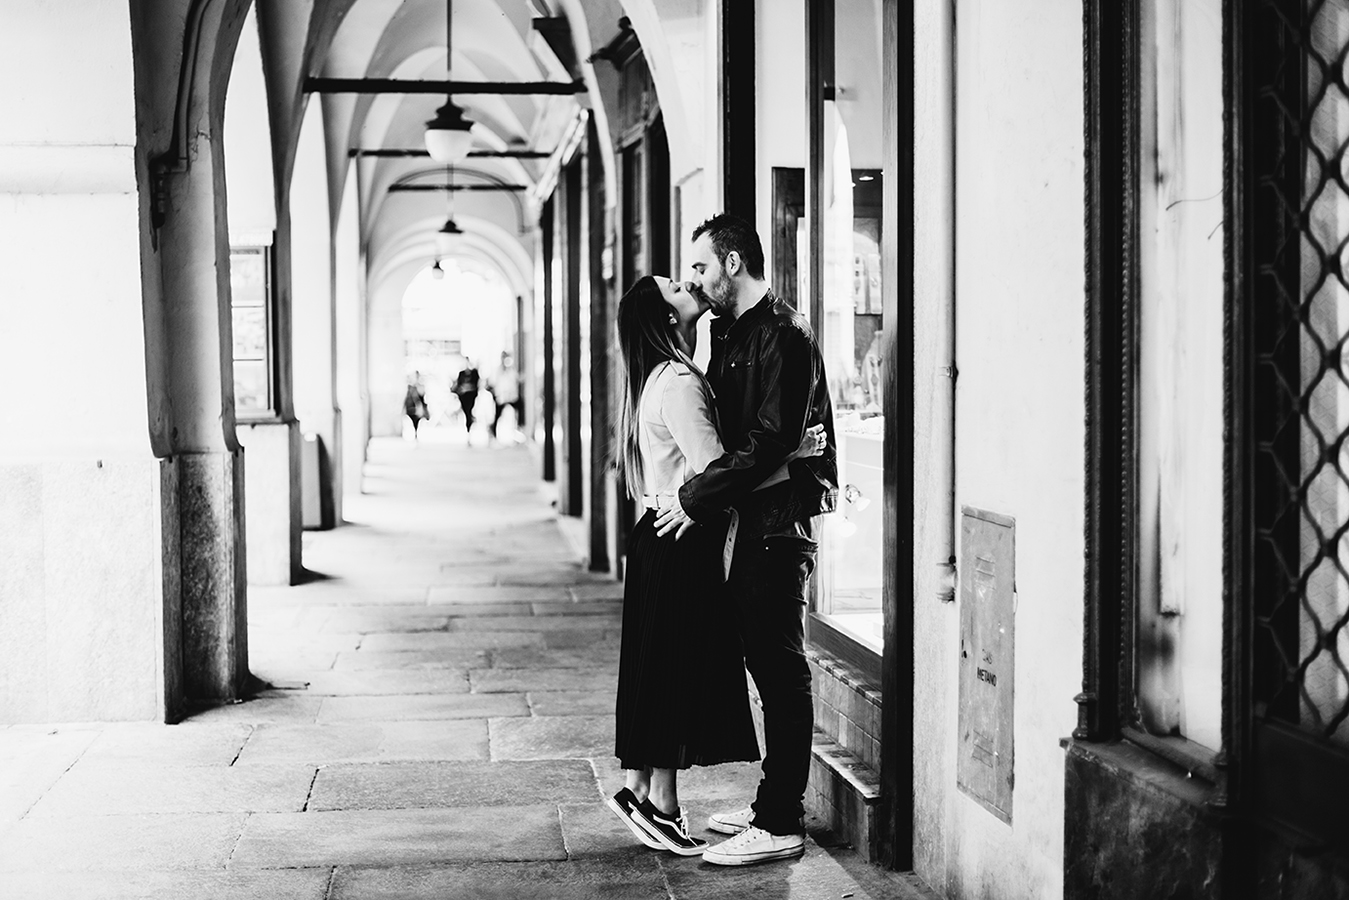 love photo experience, Liguria photography, Monferrato photography, couple shooting, intimate photography, Piemonte photographer, photo shooting in Italy, 5 Terre, cinque terre, portofino, monferrato